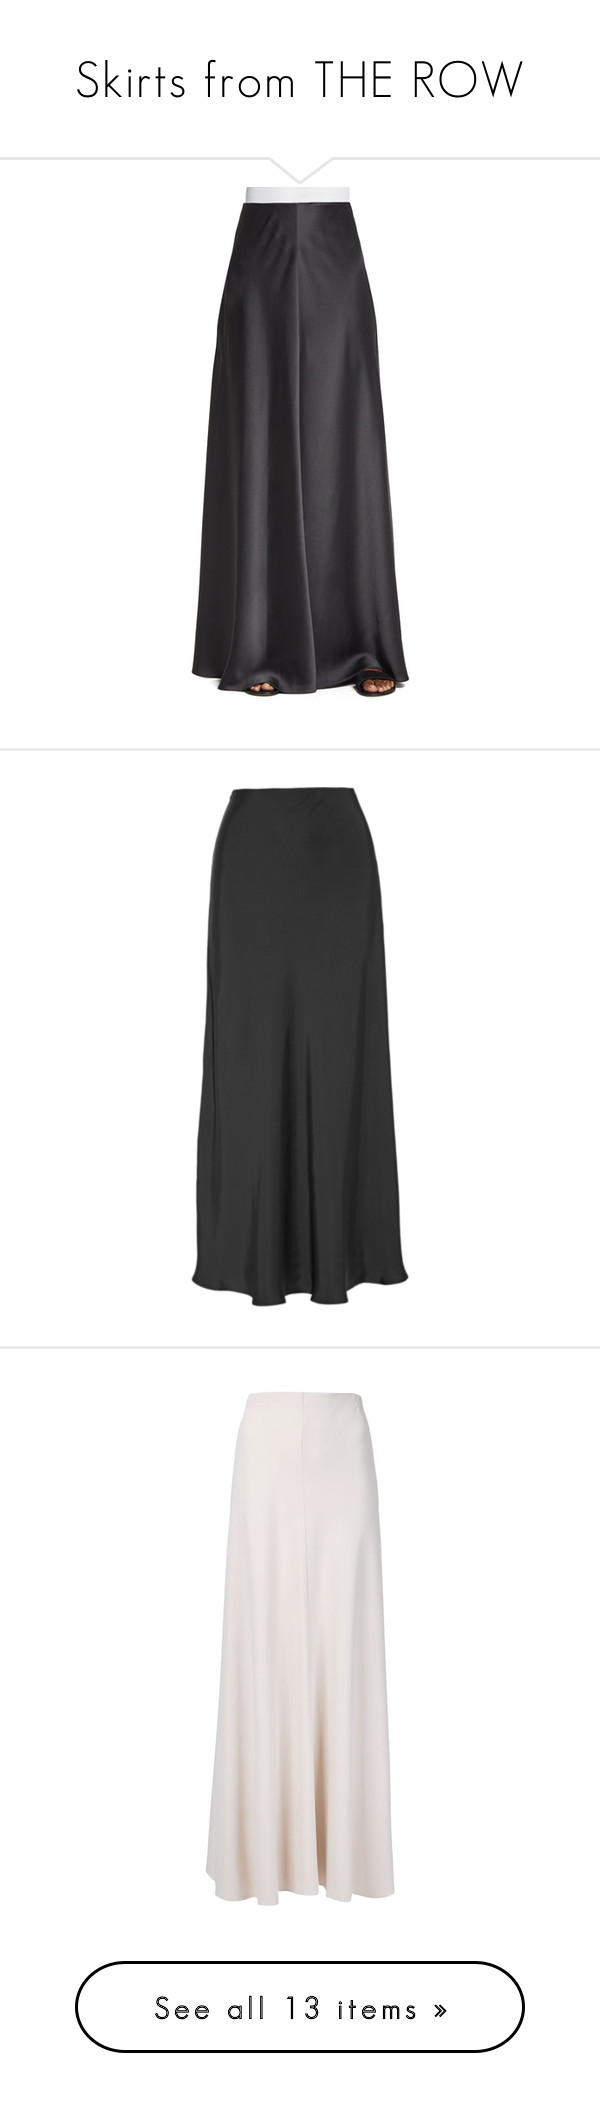 """""""Skirts from THE ROW"""" by fufuun ❤ liked on Polyvore featuring skirts, pewter, long skirts, ankle length skirt, ball skirts, floor length skirts, long a line skirt, anthracite, long elastic waist skirt and satin skirts"""